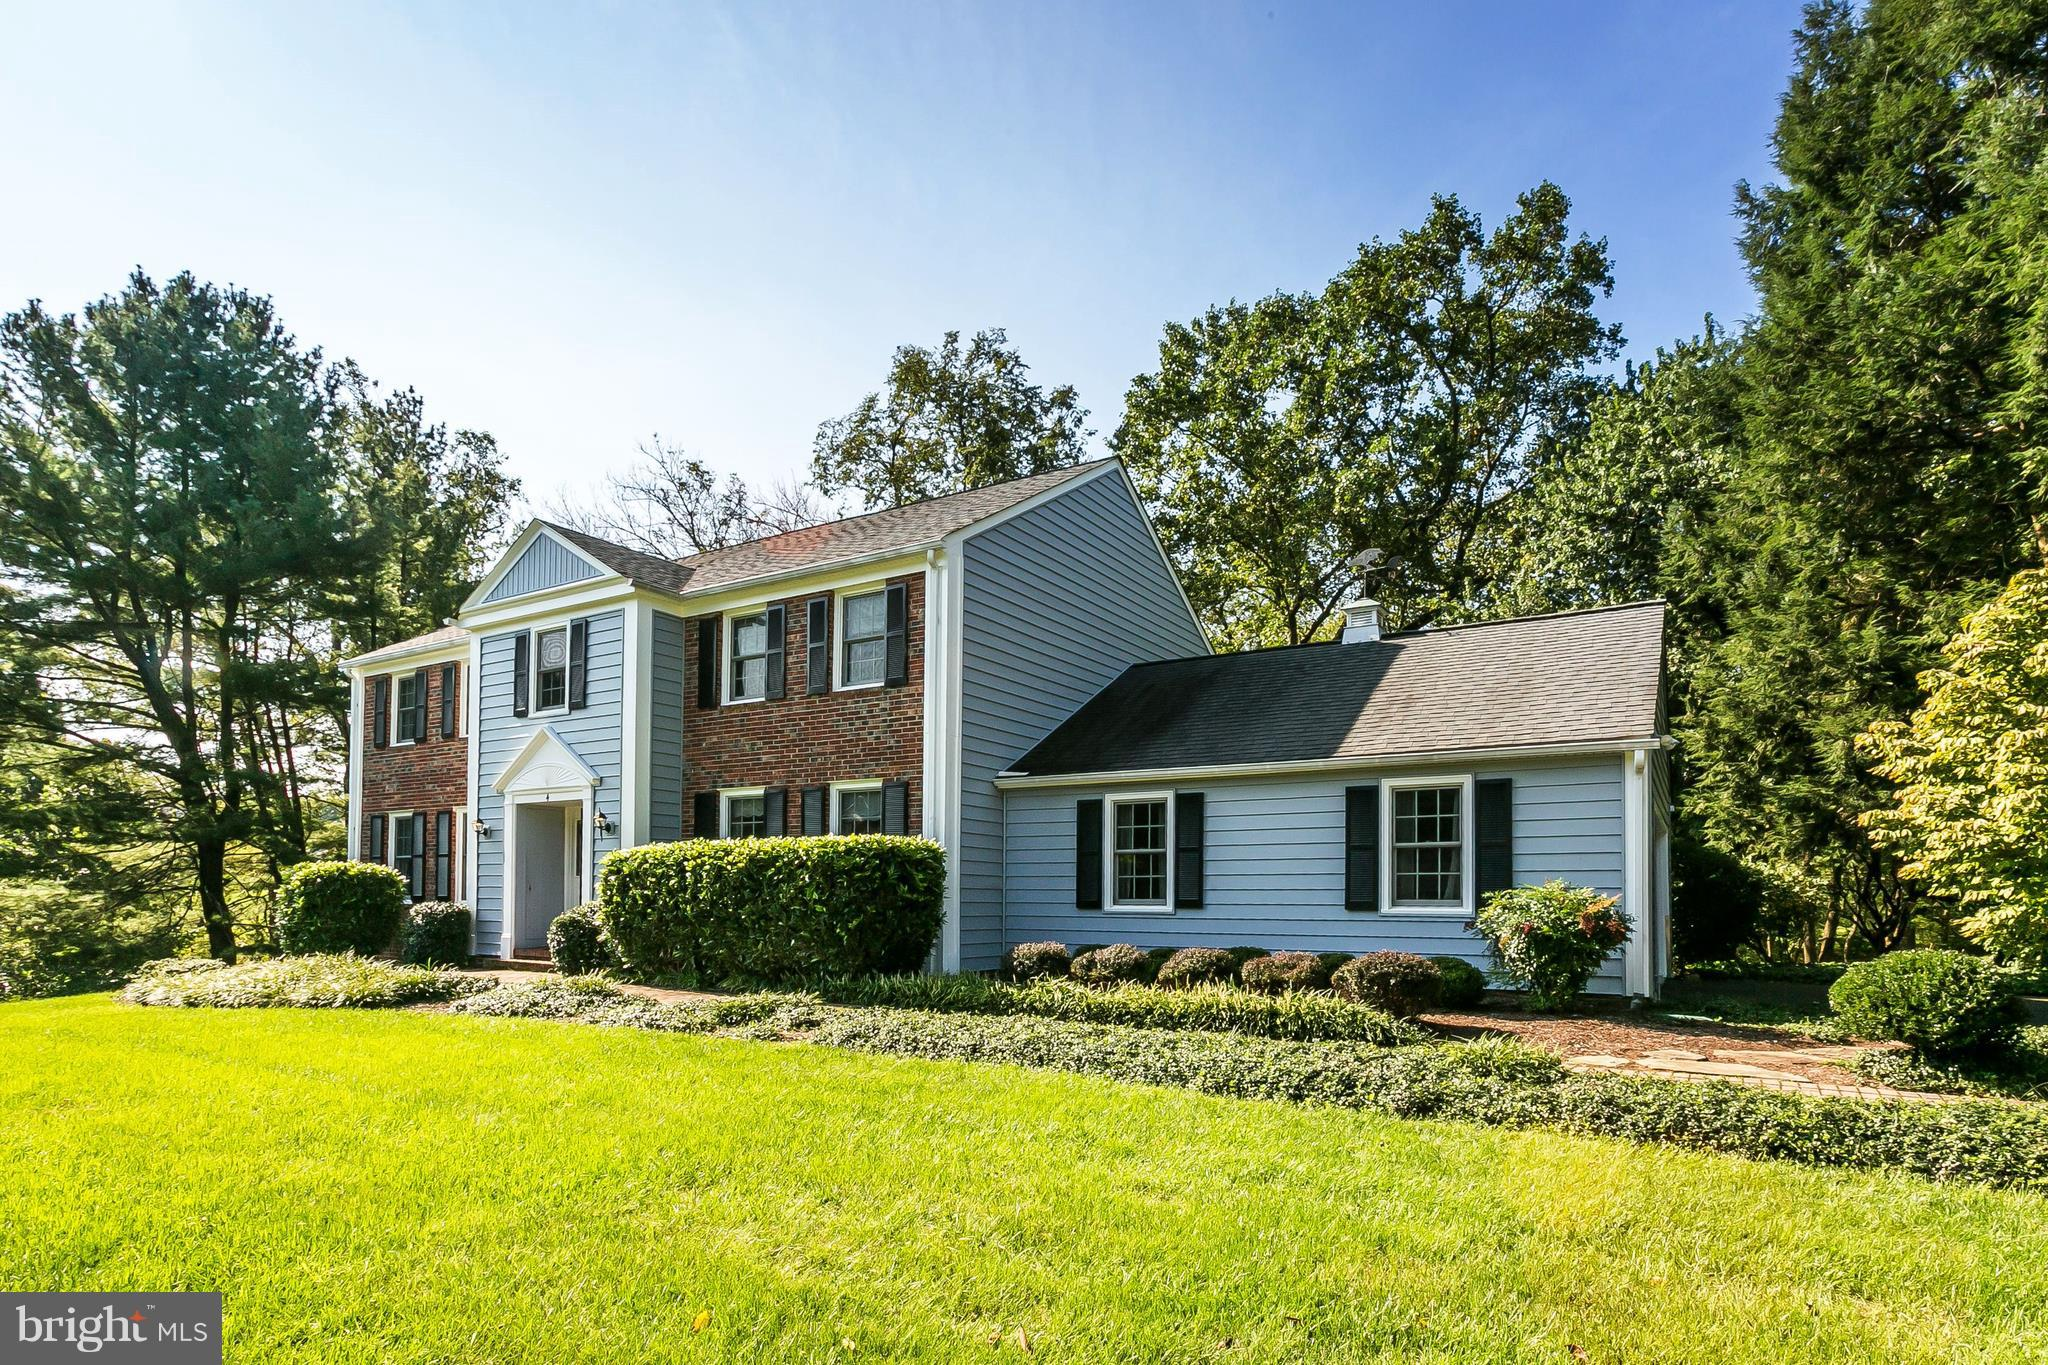 Wonderful True 5 Bed., 3.5 Bath Colonial On Court Location. Updated Eat-In Kit. W/Stainless Appl., G